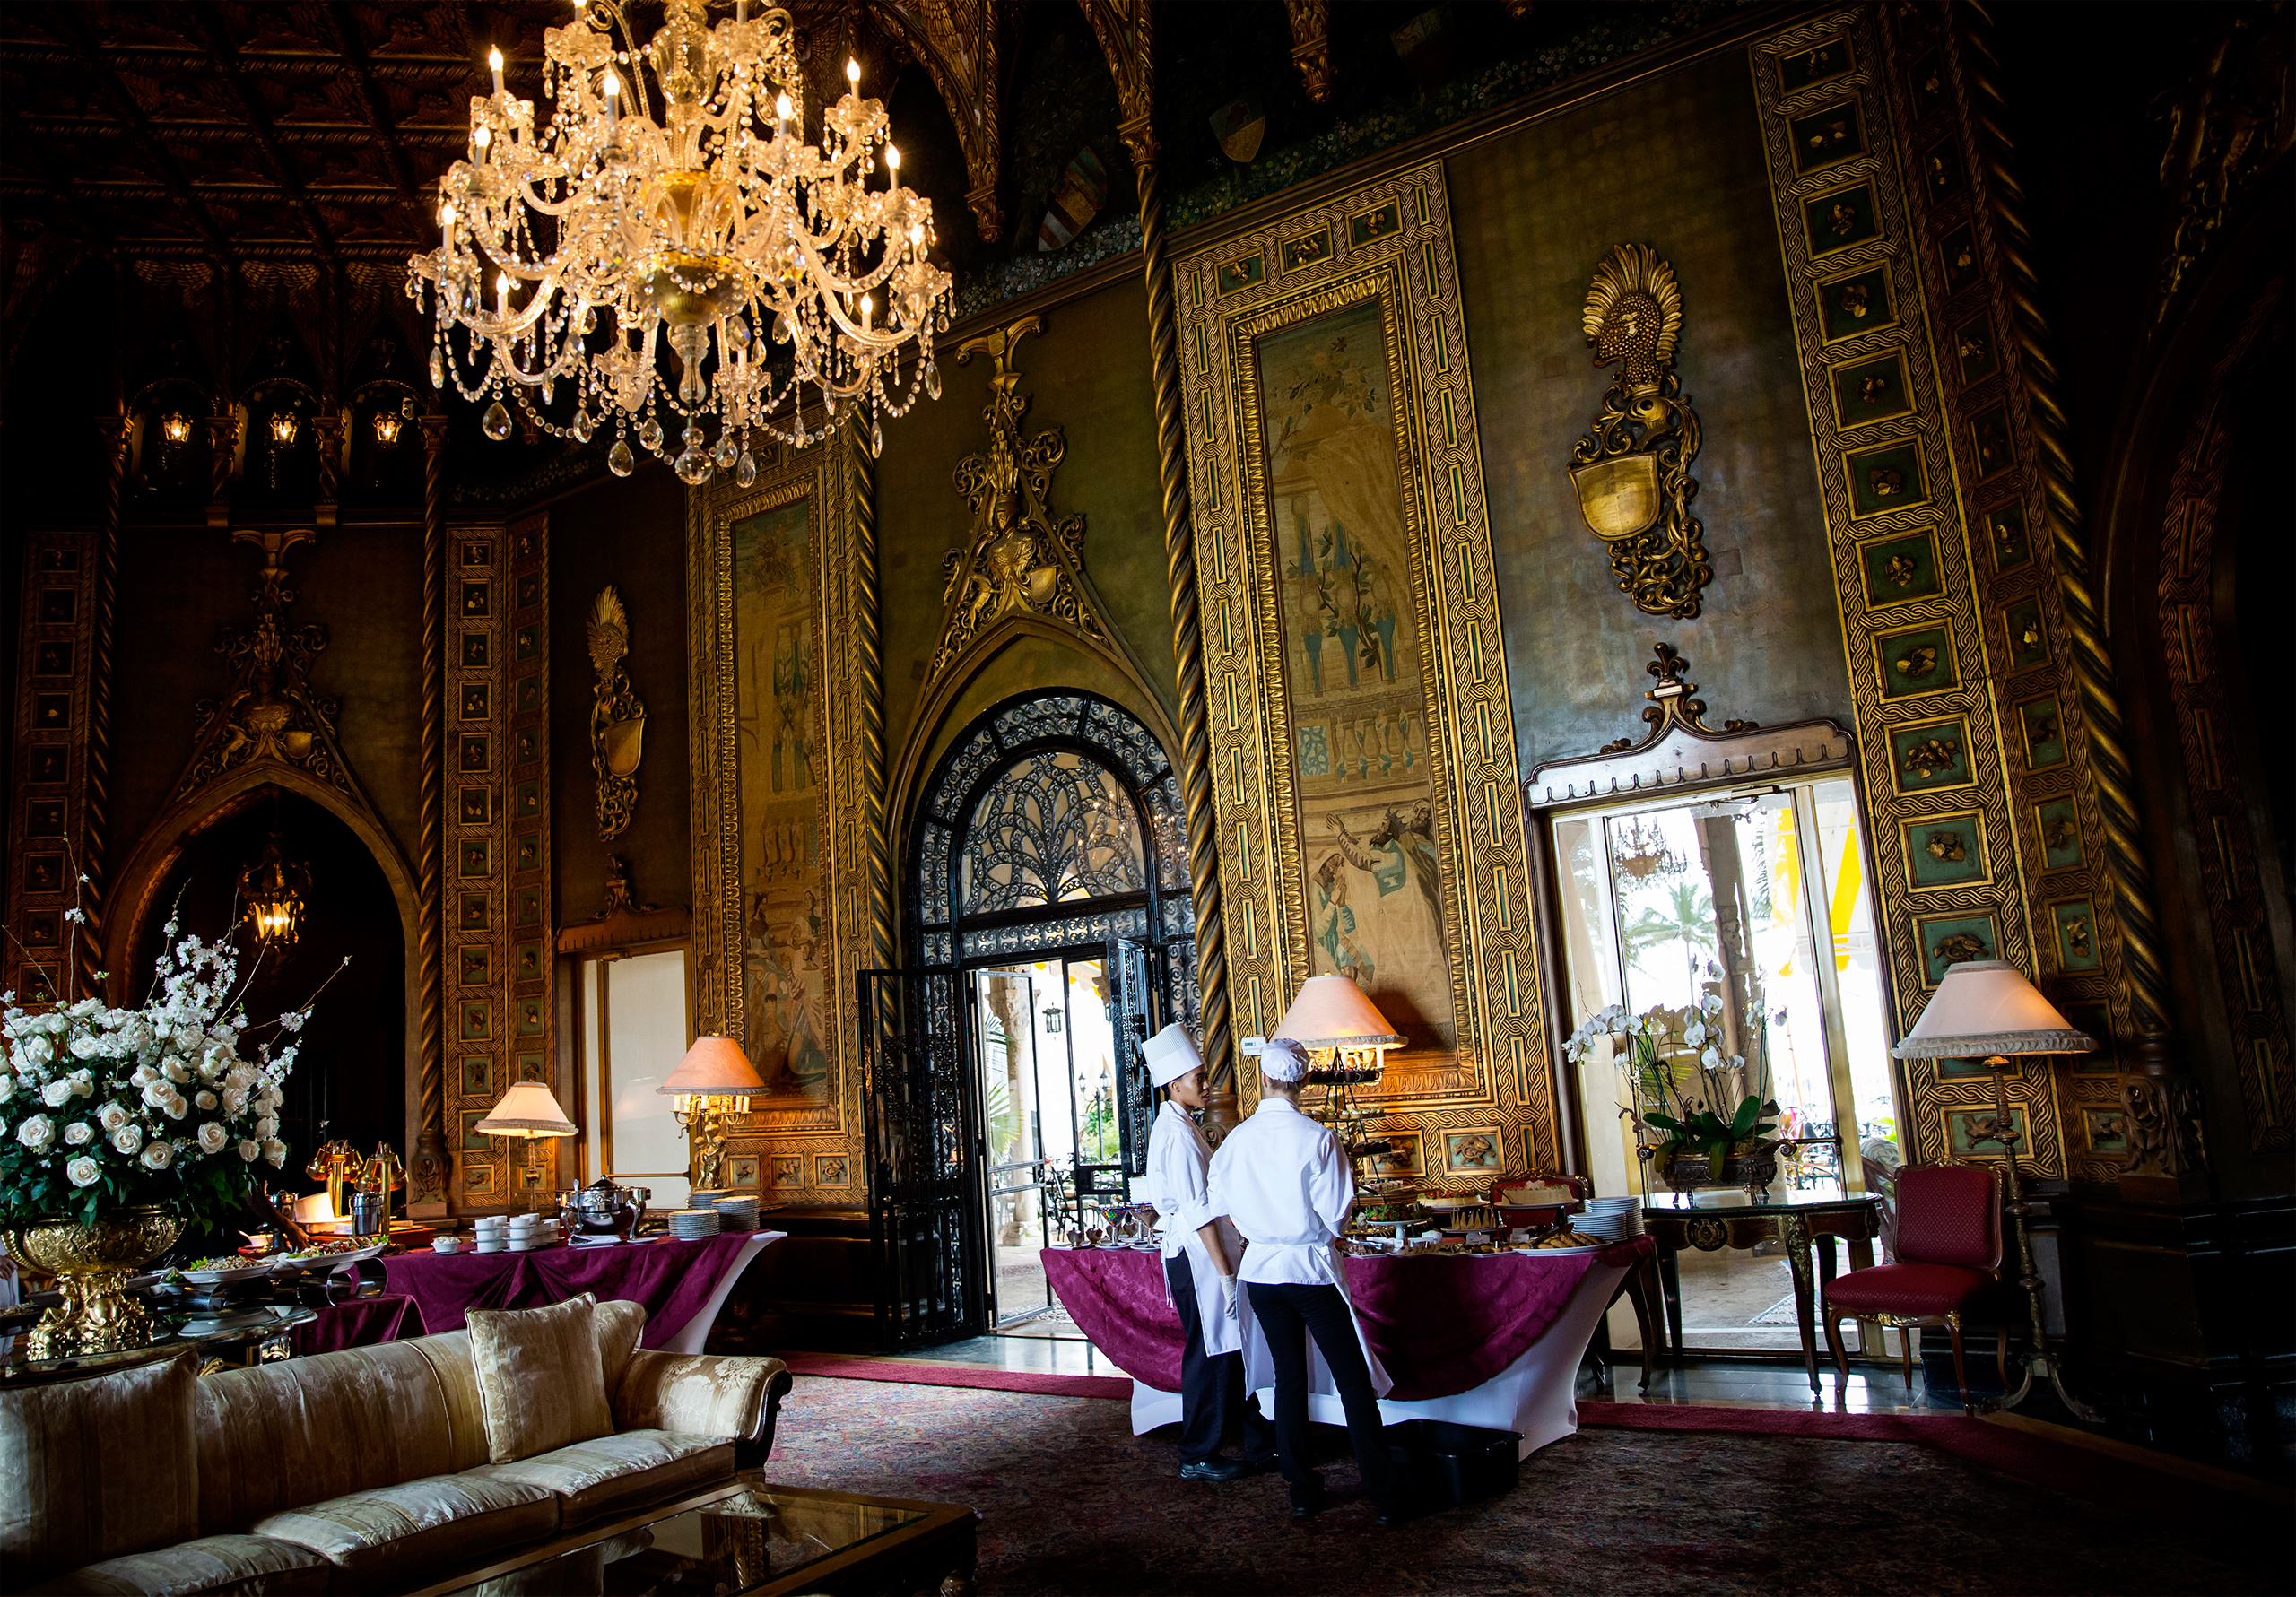 The main living room in Donald Trump's Mar-a-Lago estate in Palm Beach, Fla., March 4, 2016.